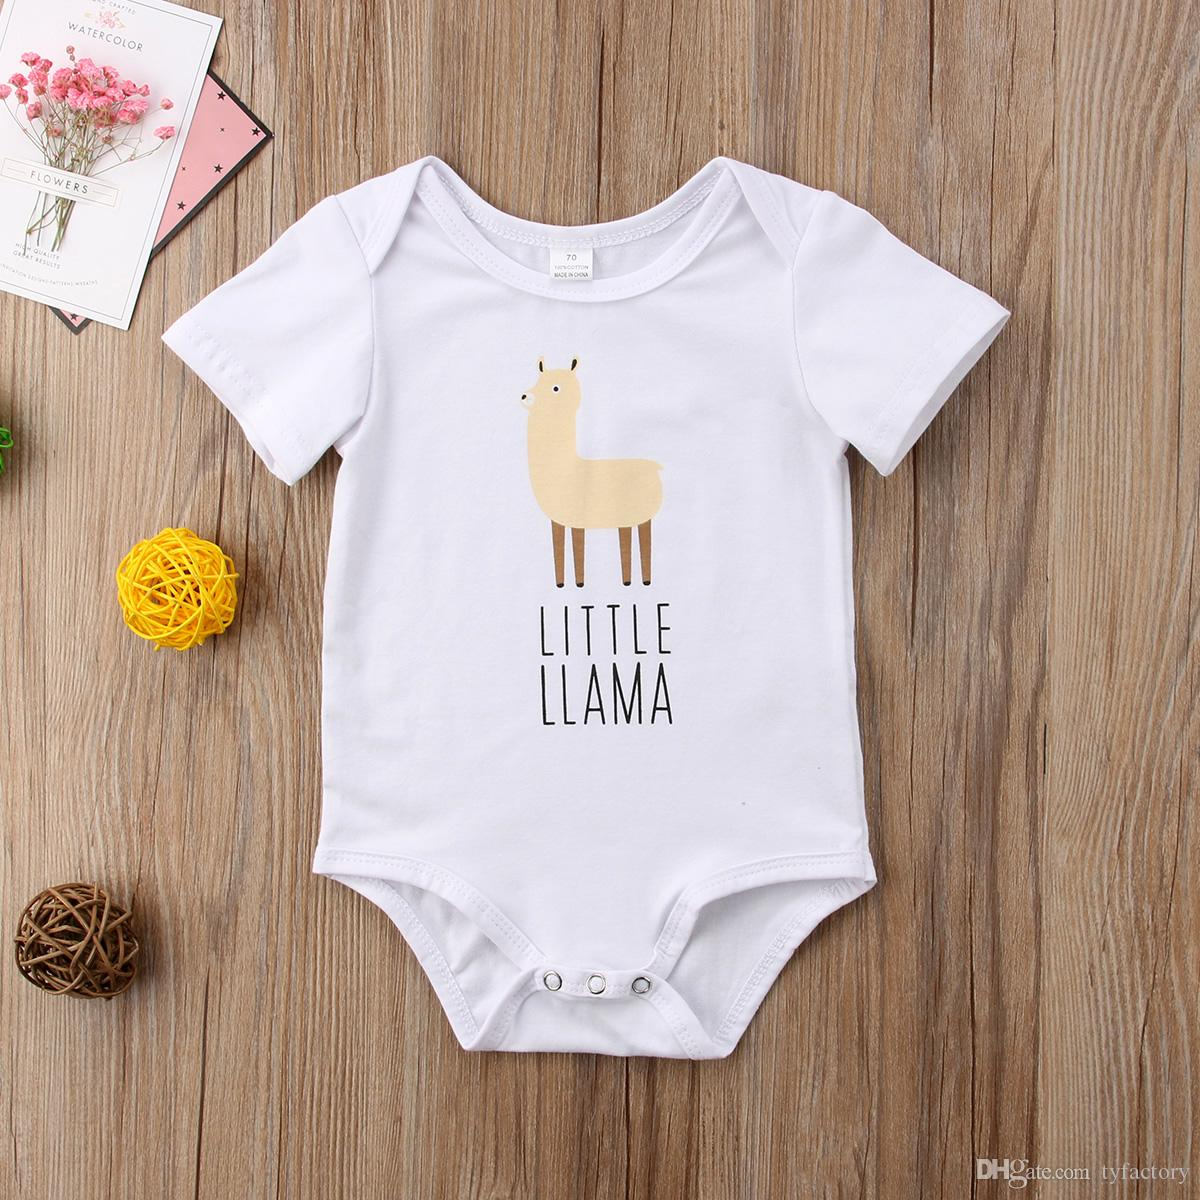 Unisex Baby Short Sleeve Bodysuit No Prob-Llama Infant Romper Jumpsuit